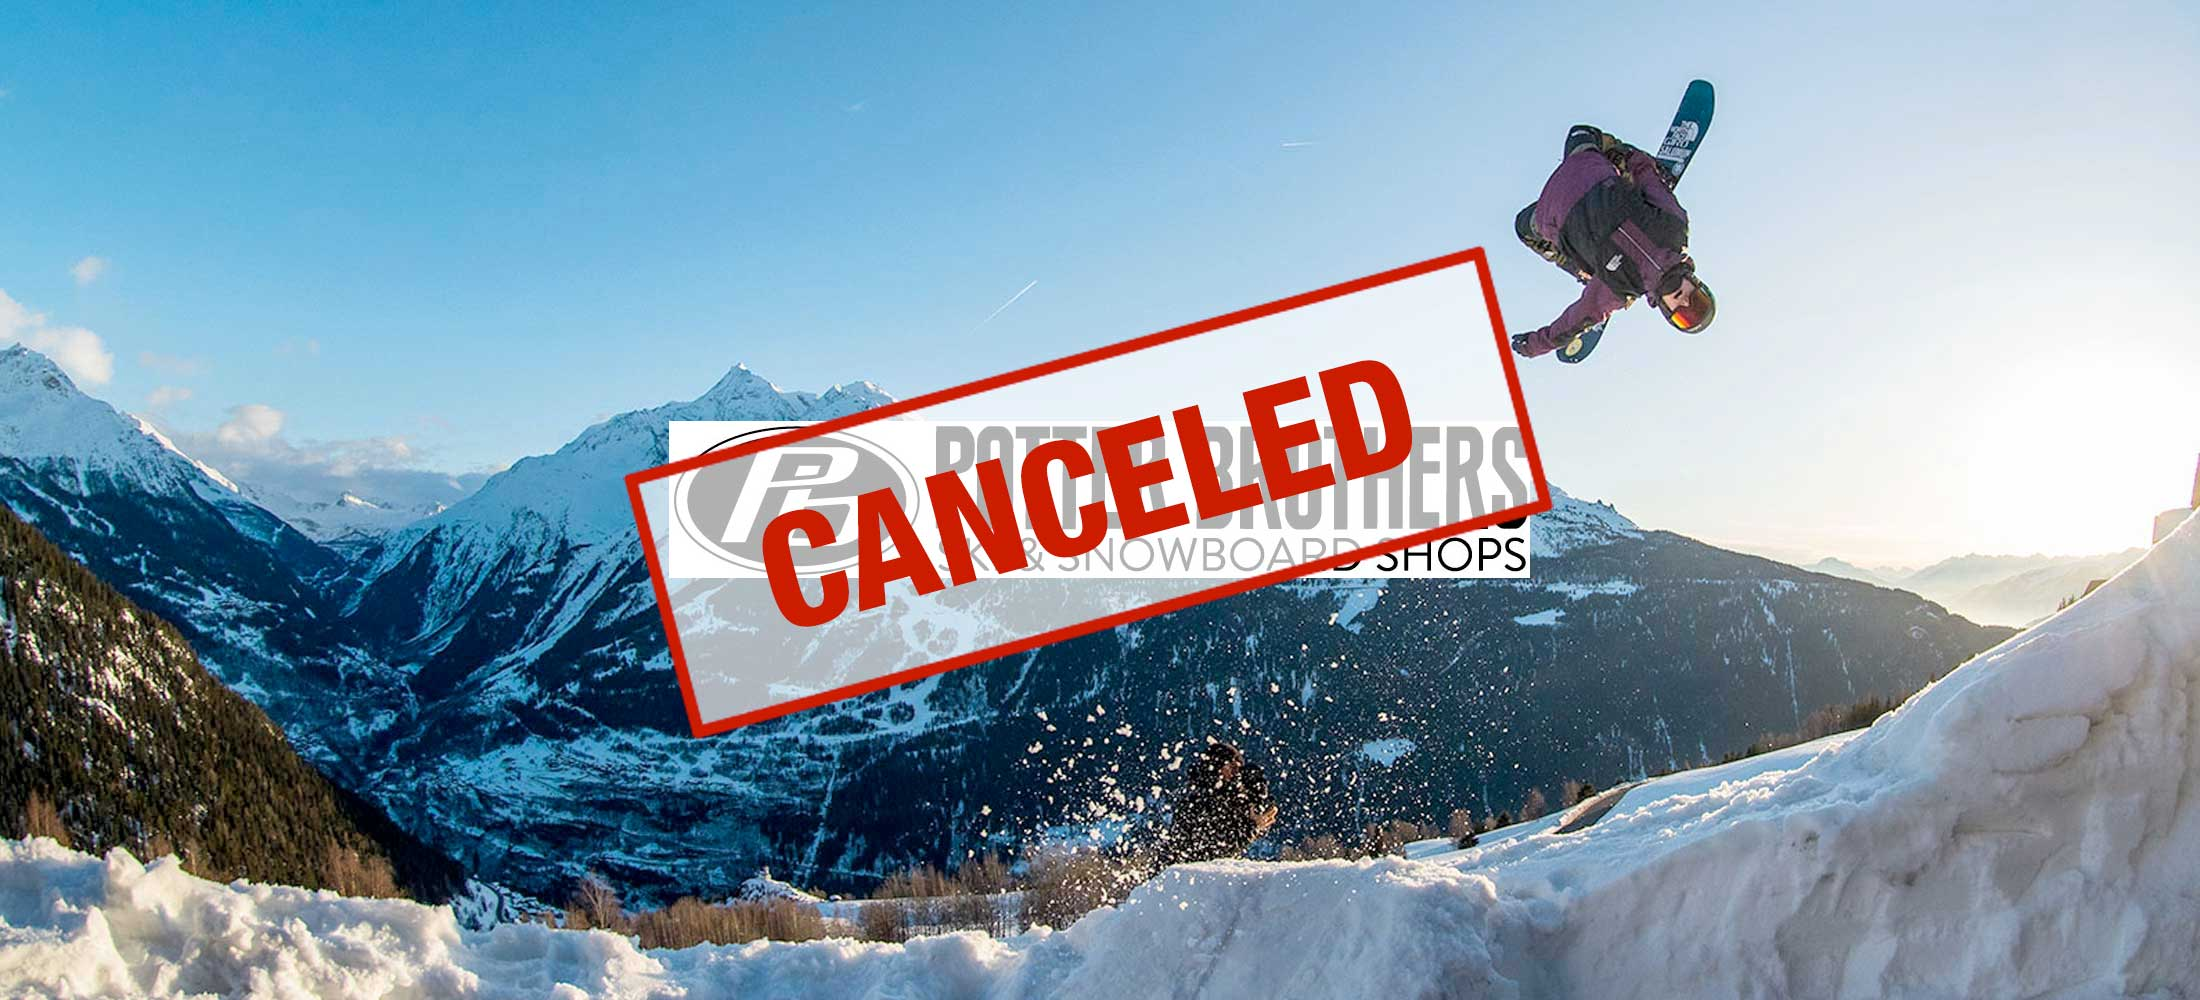 Potter Bros Ski Snowboard Clothing Sale CANCELED